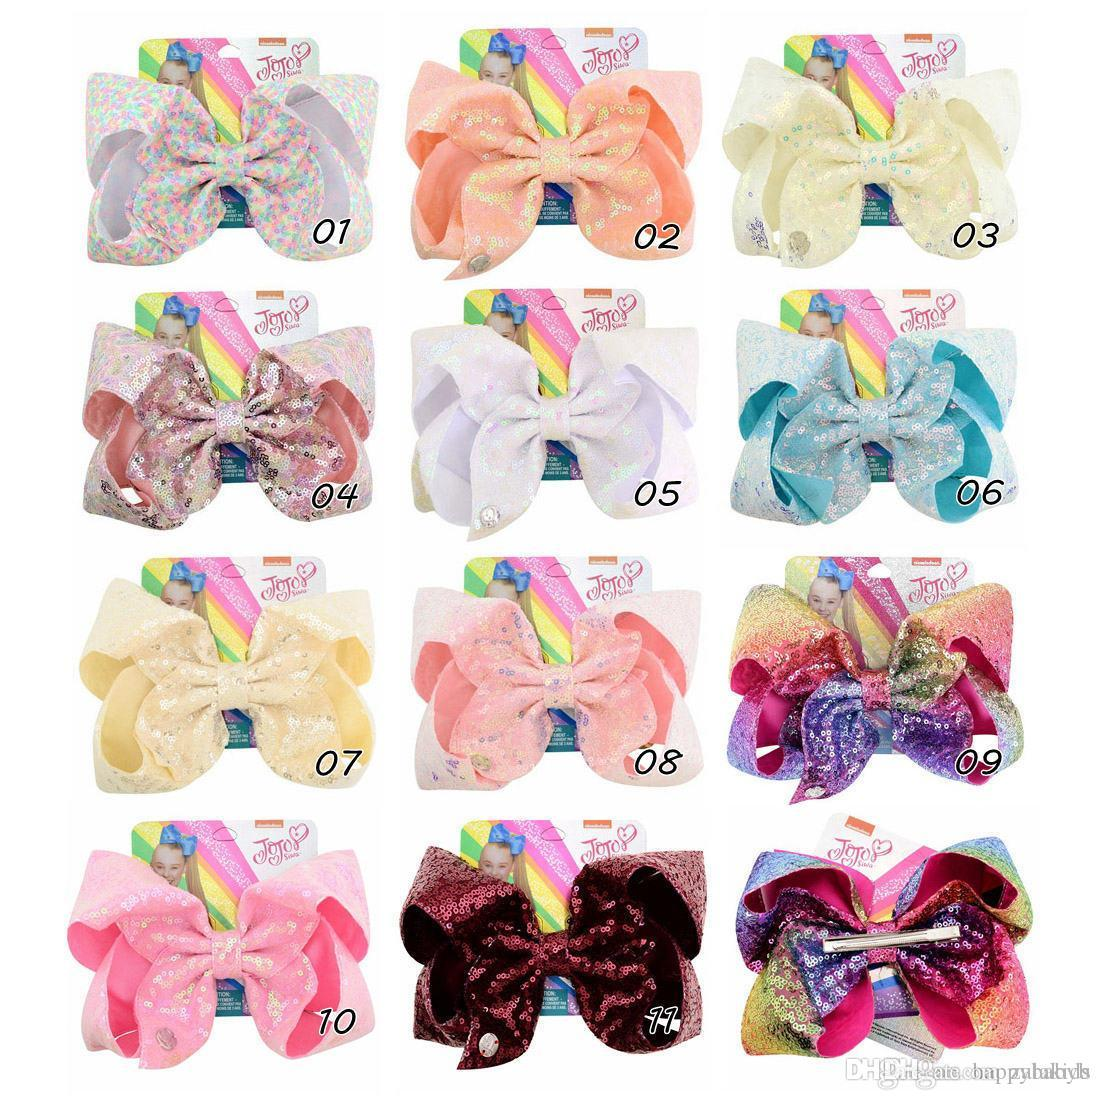 8 Inch JOJO SIWA Large Hair Bow Flip Sequin Gradient Hairpin Bows for Girl Kids